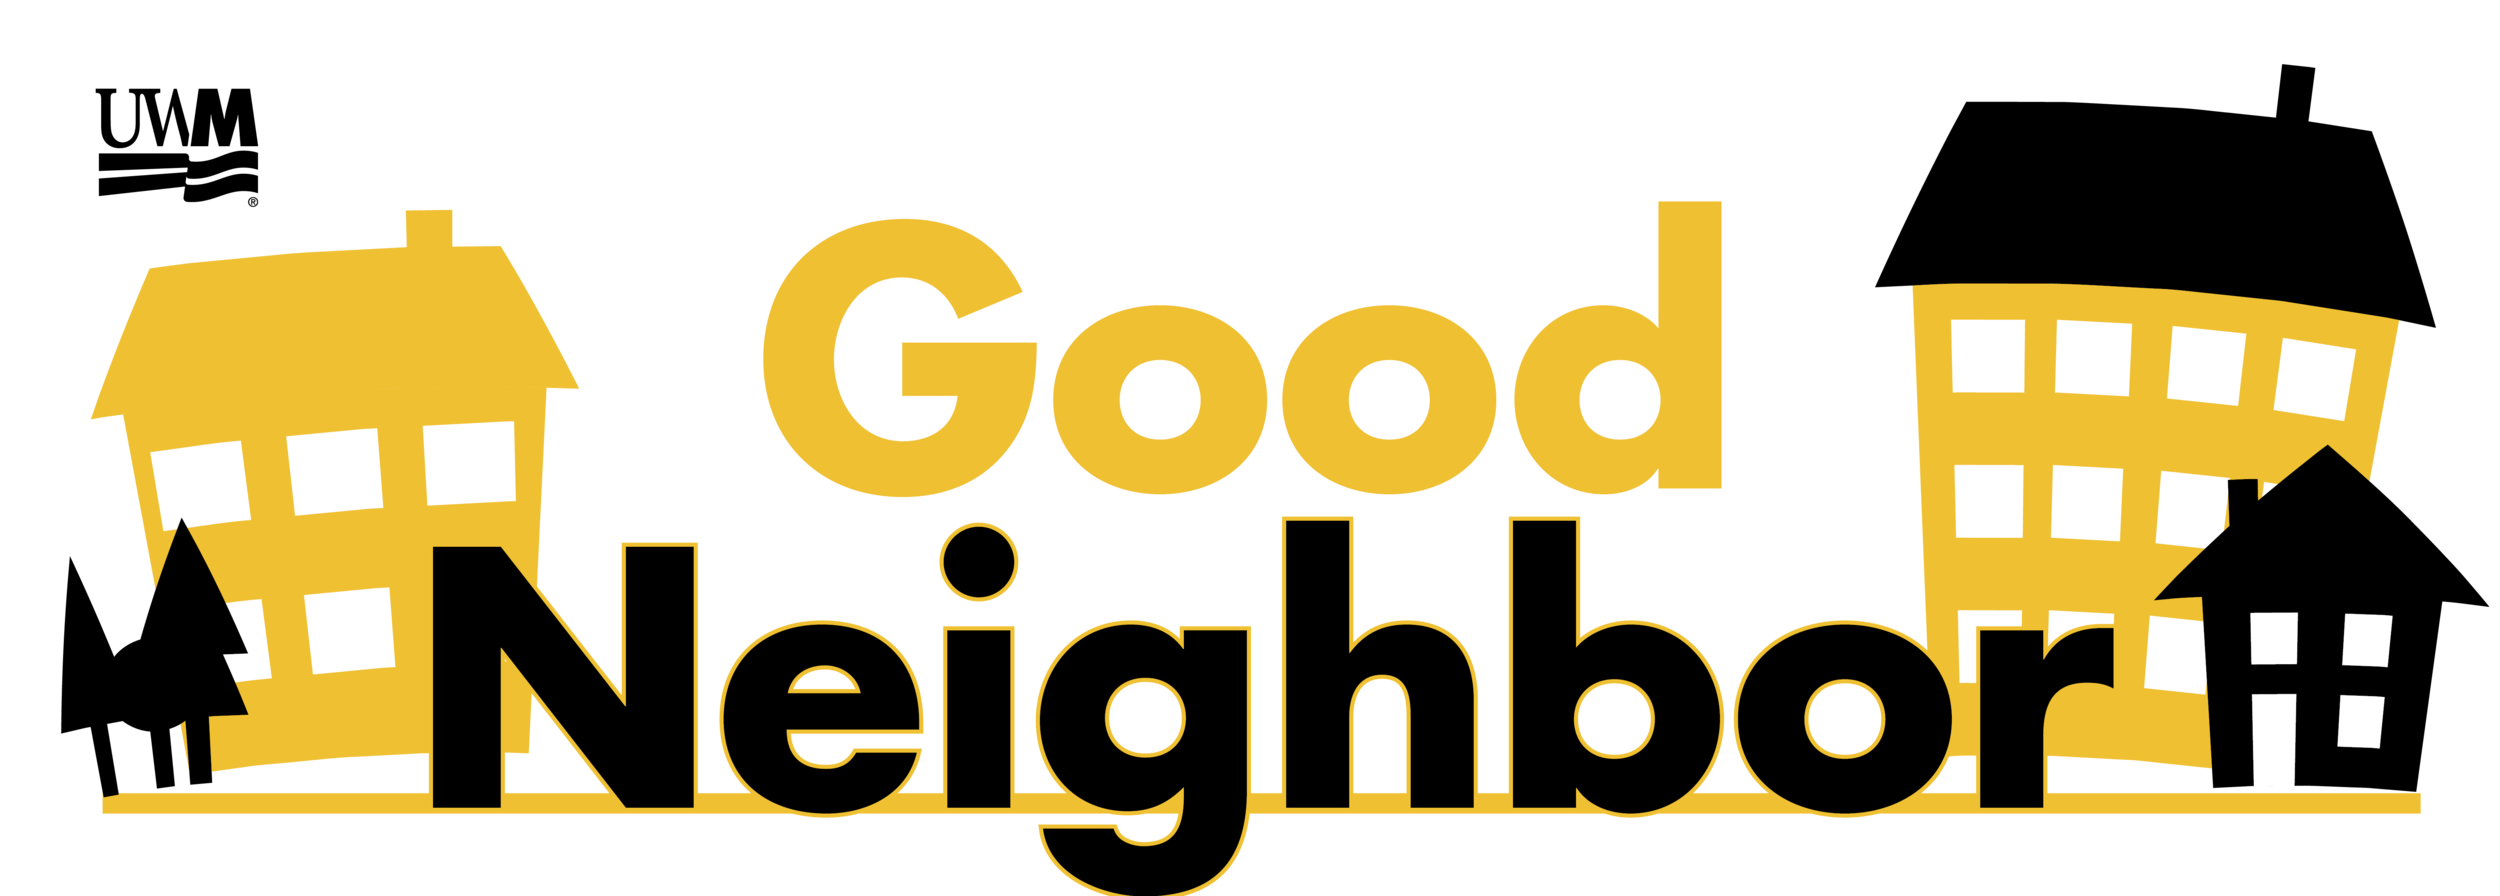 WhiteGoldGood-Neighbor-e1555437971185.png